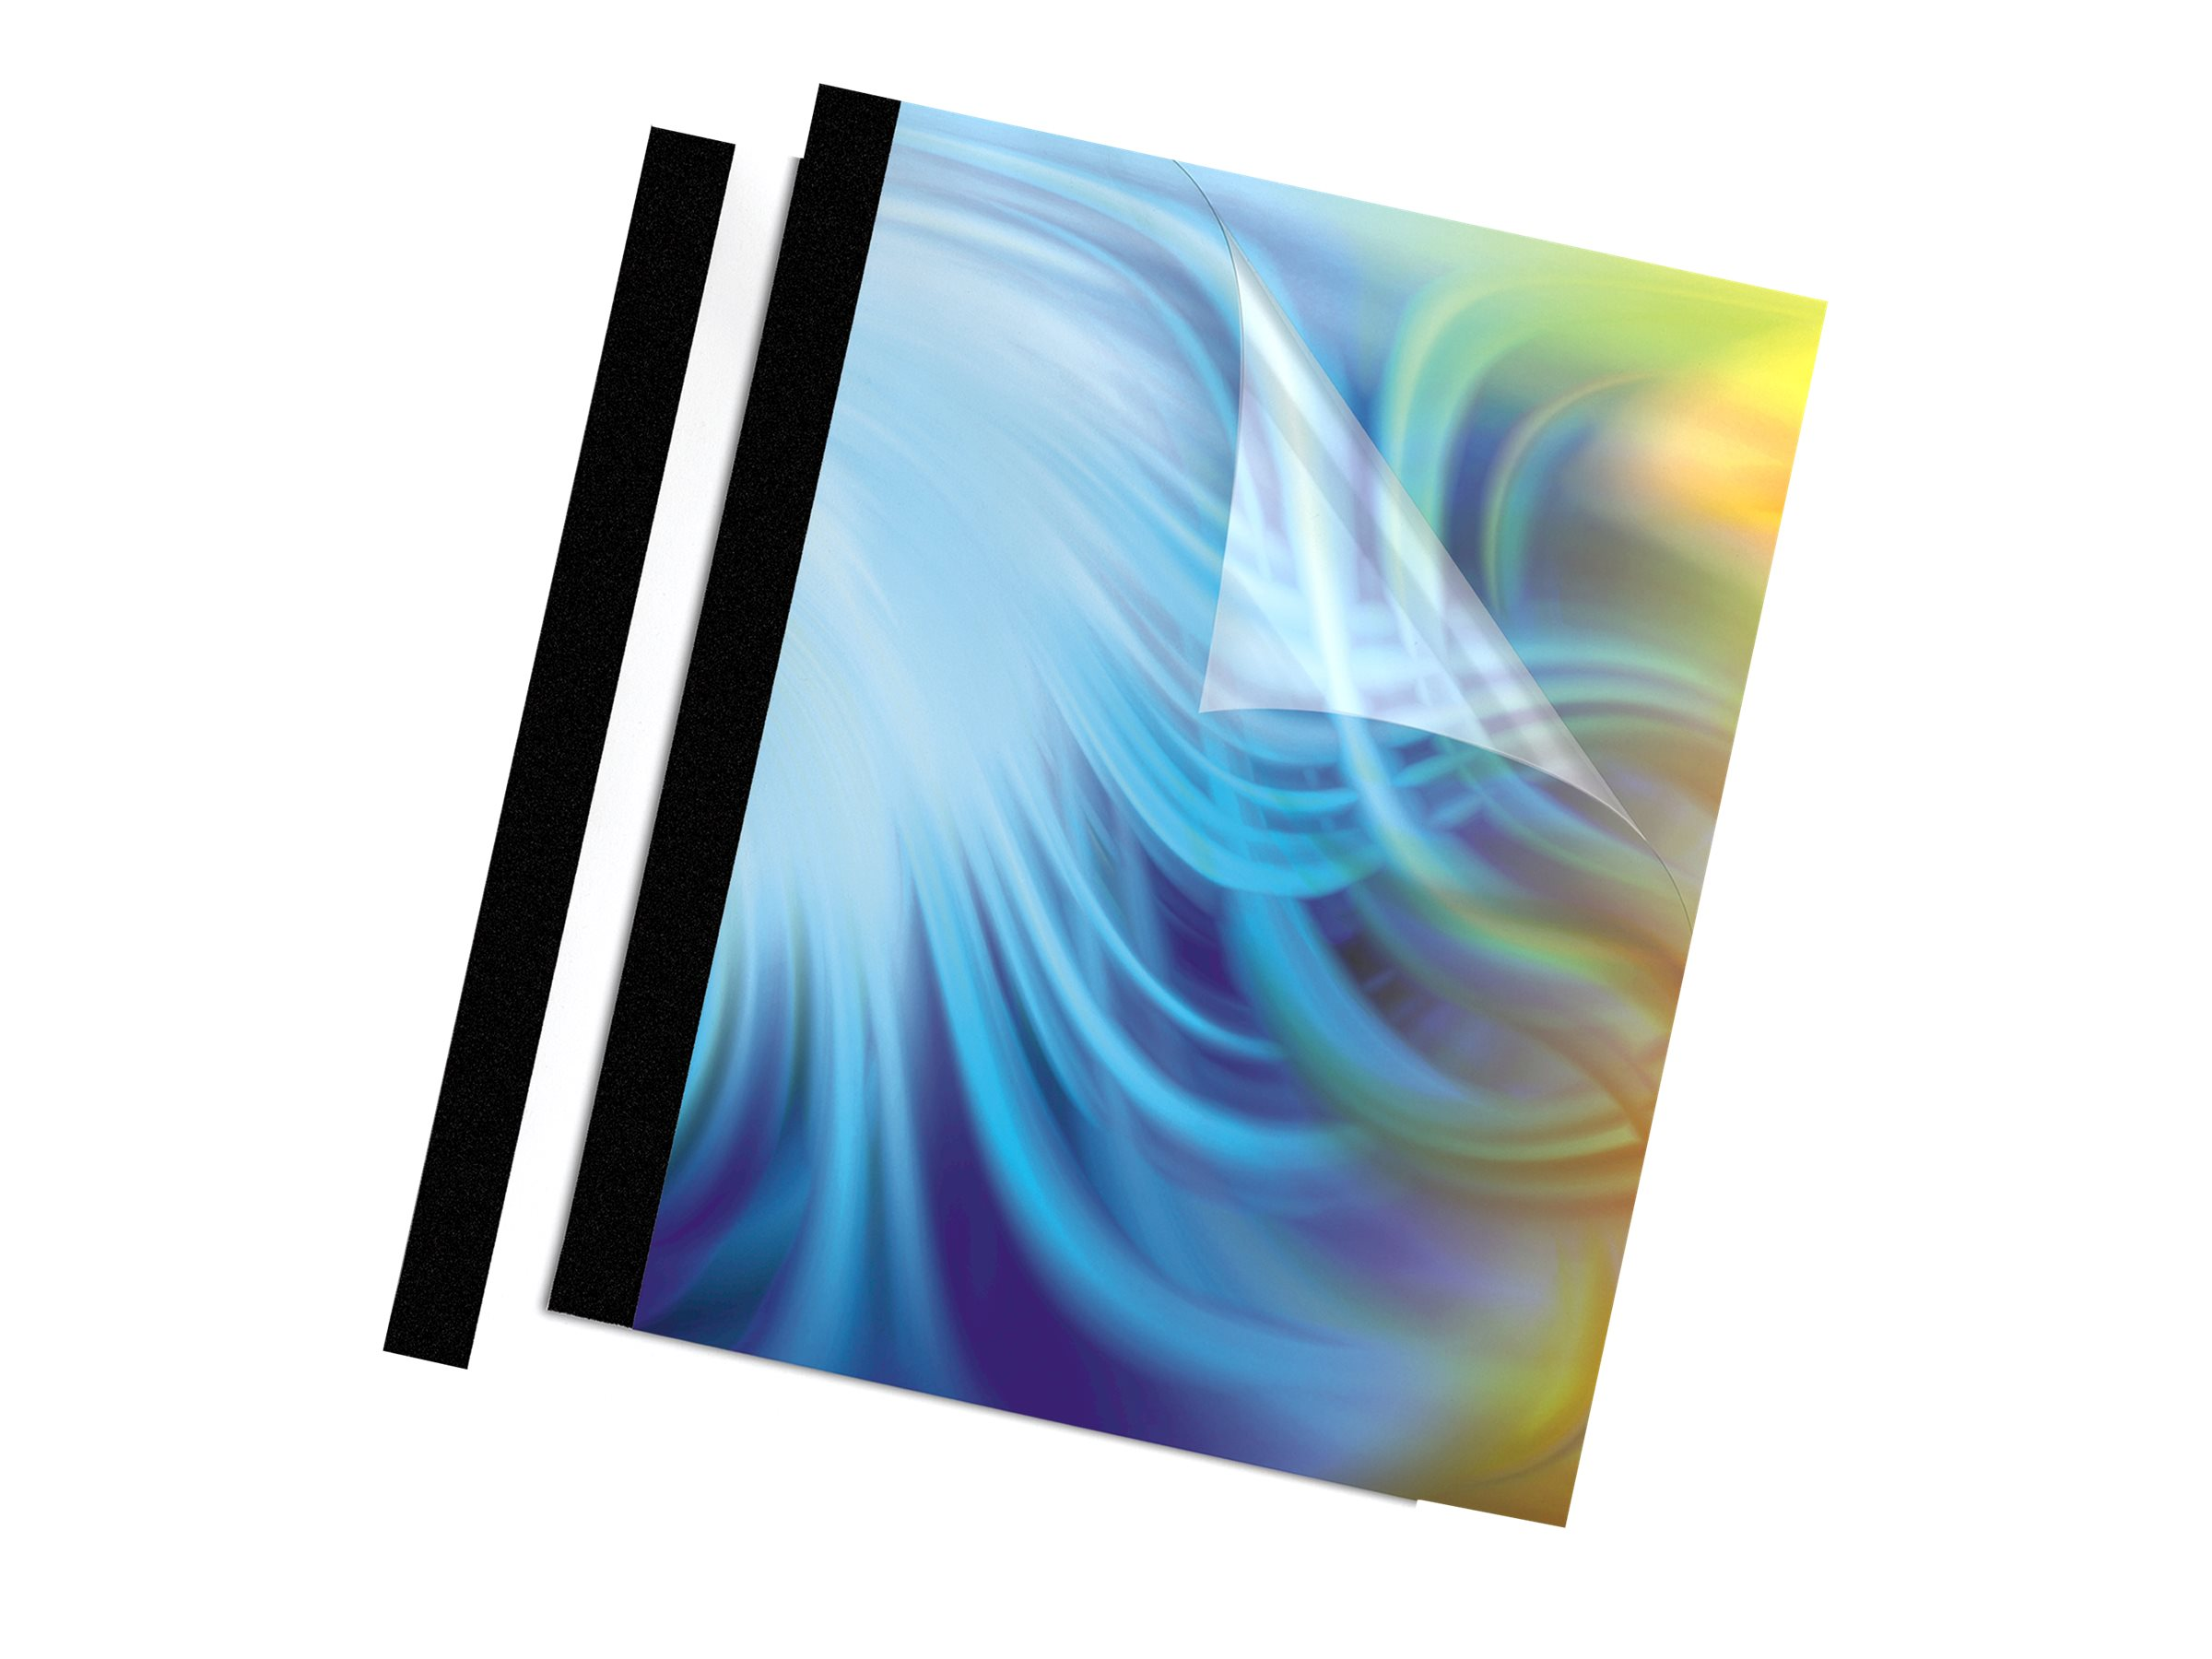 Fellowes Presentation Covers - 10 pcs. - thermal binding cover